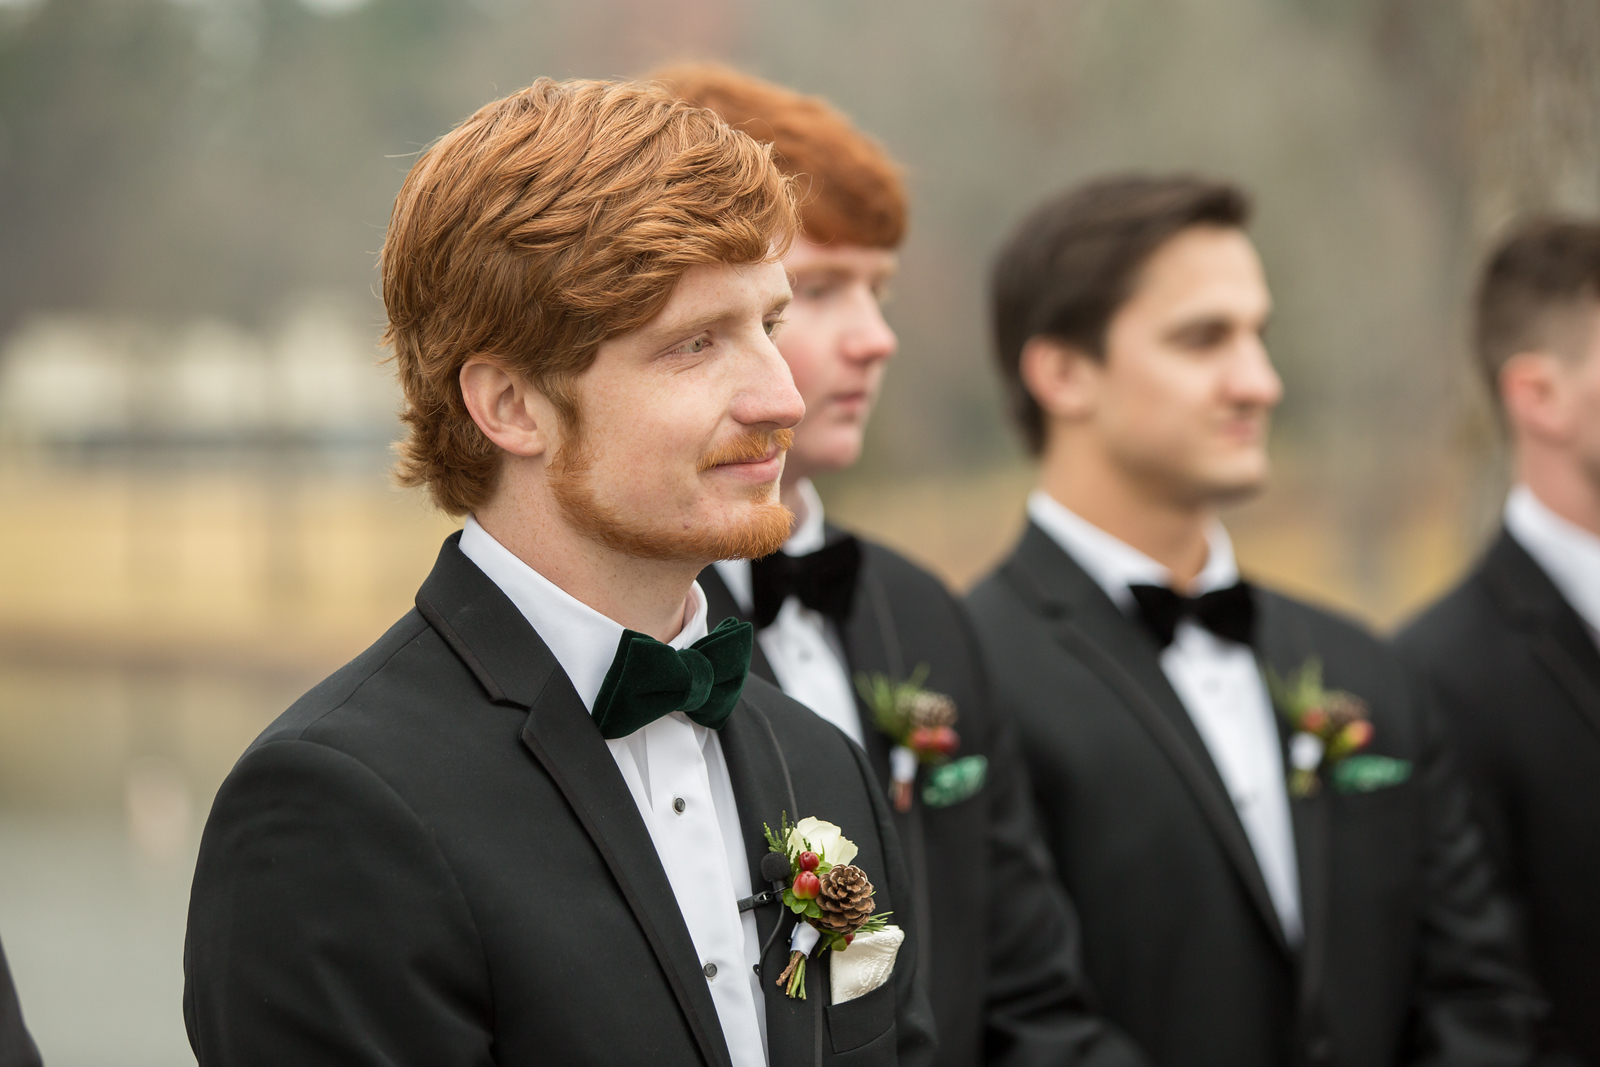 A groom waiting at the altar for his bride